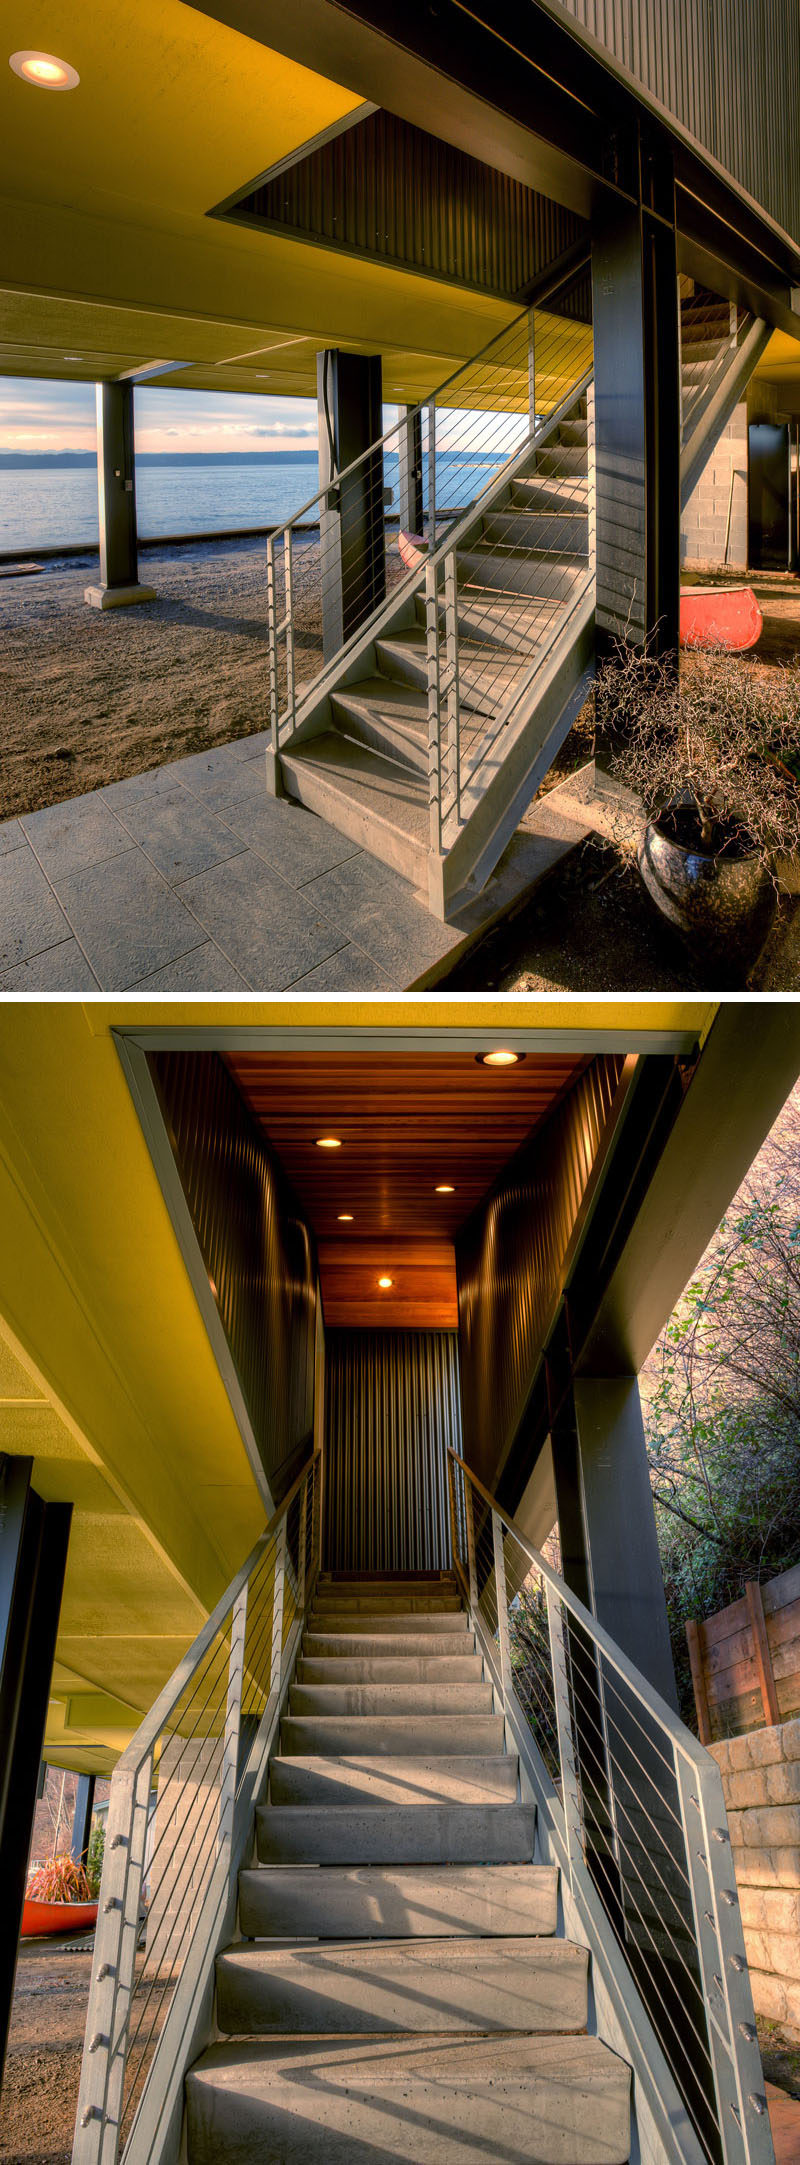 Concrete stairs lead you up to this home in Washington State.